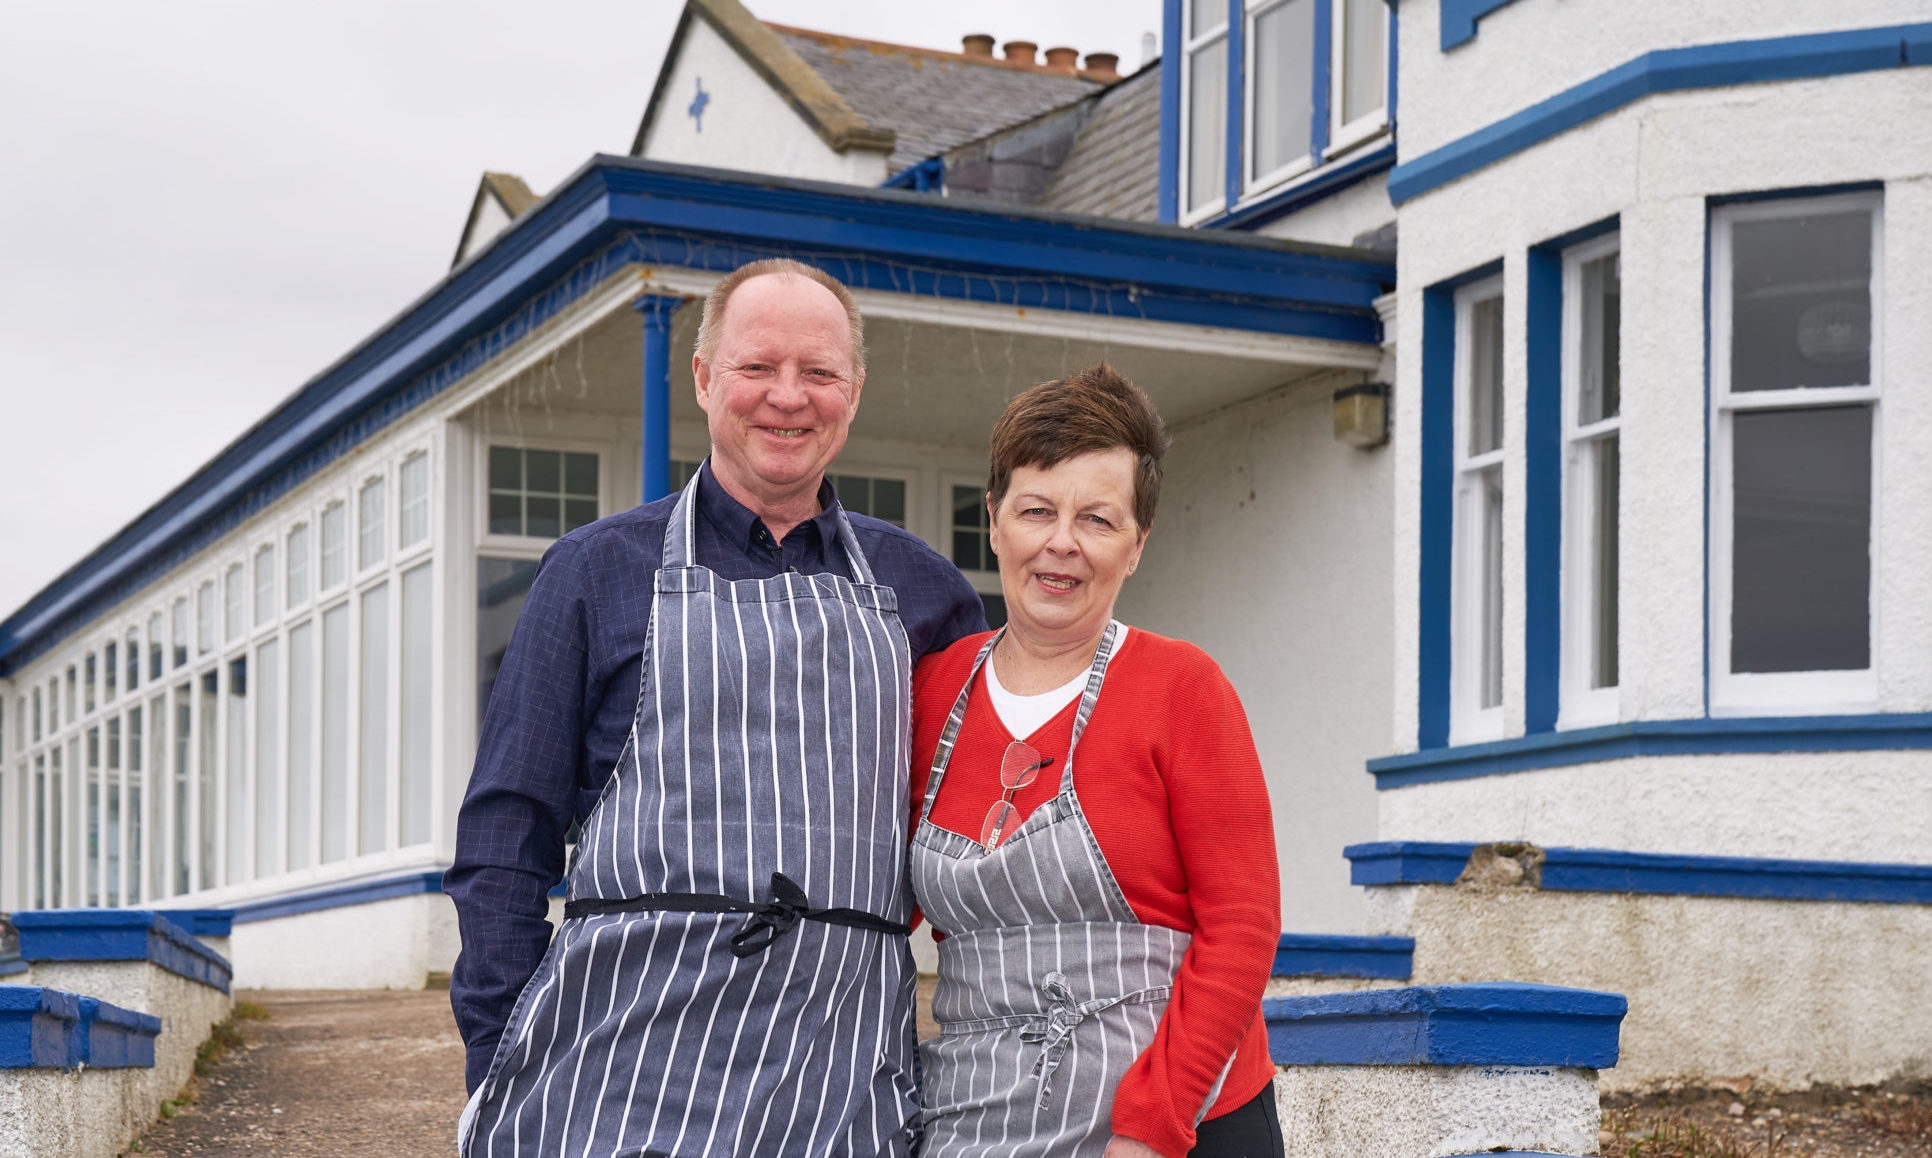 Ian and Rena Watson, husband and wife owners of the Cullen Bay Hotel.